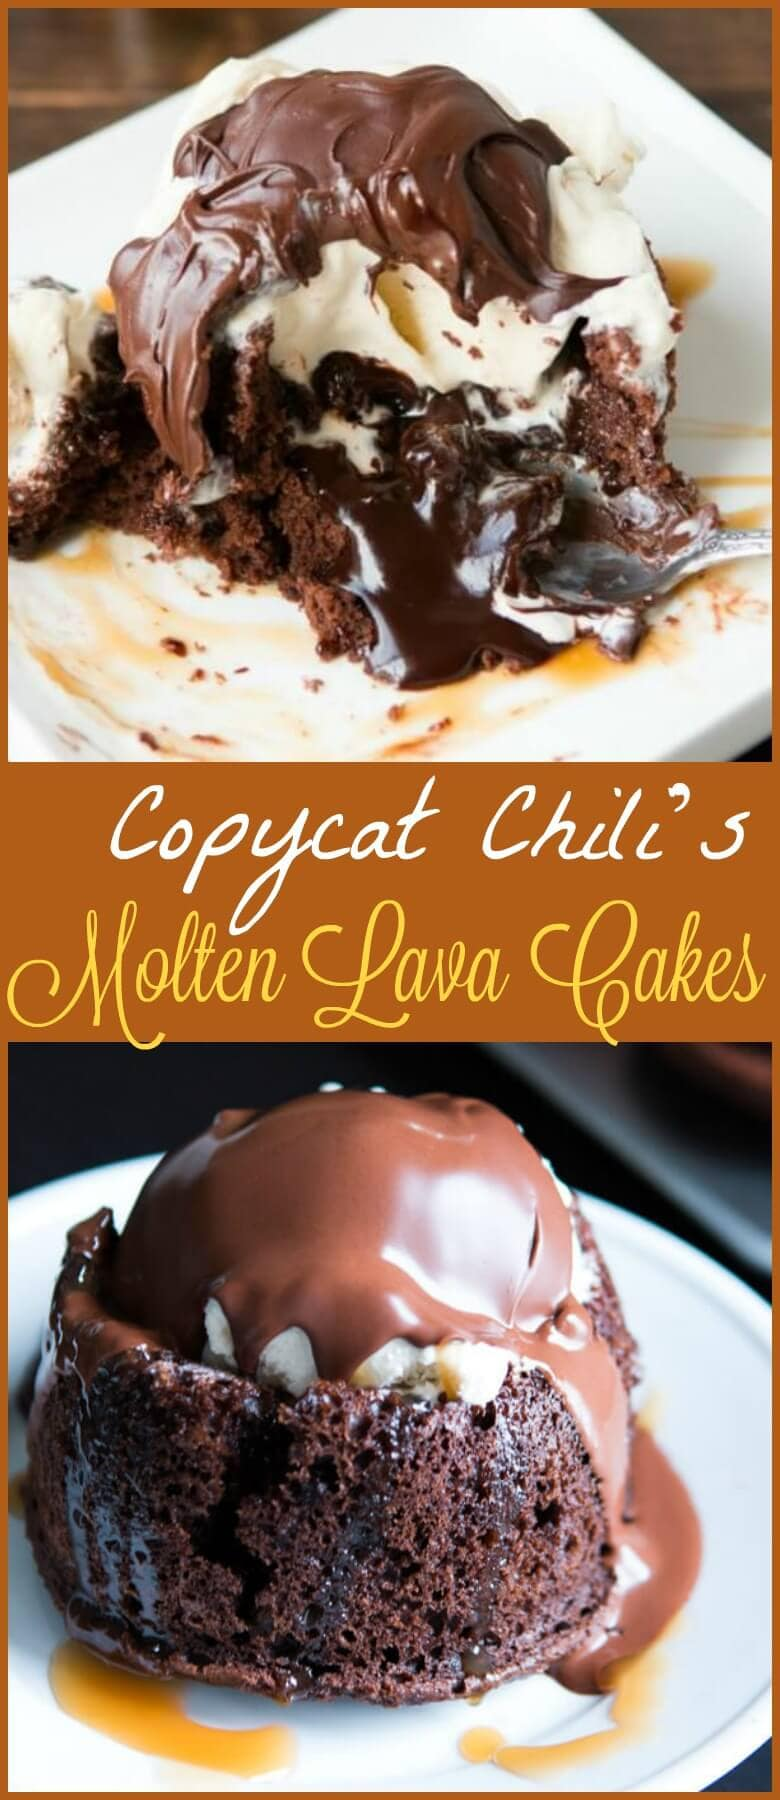 Homemade molten lava cakes are way easier to make than you'd think, and that hot fudge oozing out is such a crowd pleaser! Don't forget to serve with a scoop of ice cream!